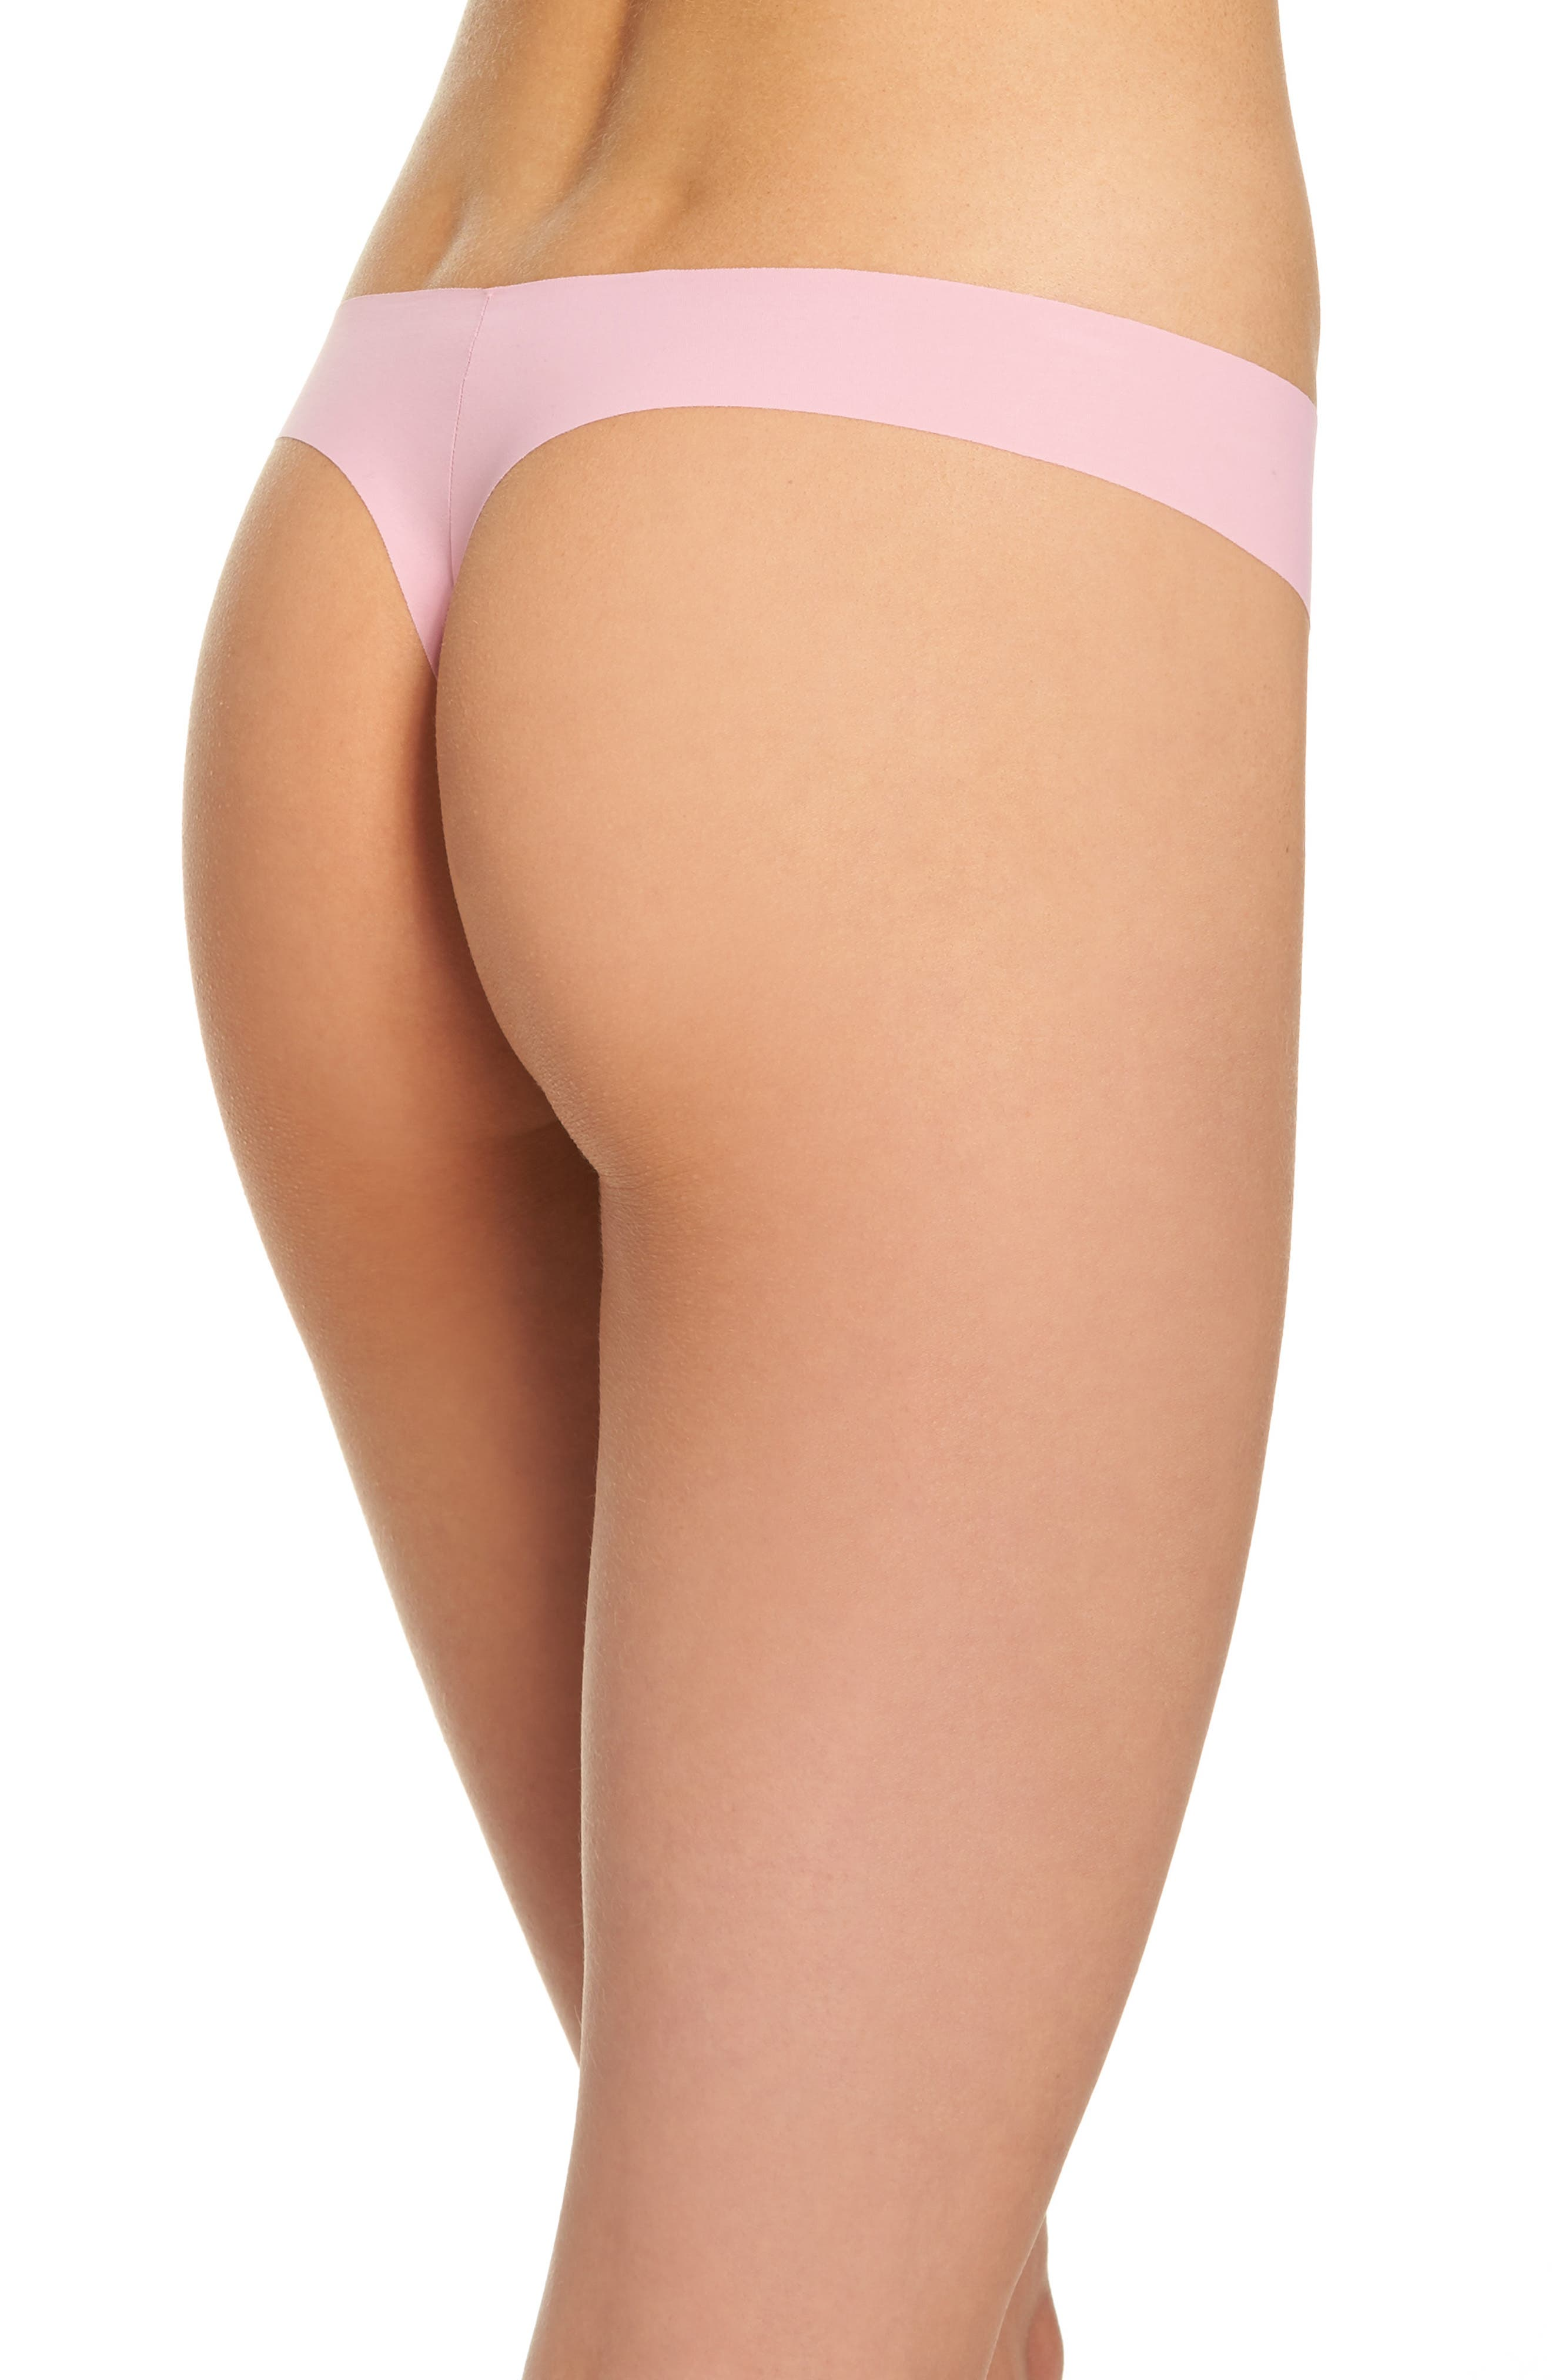 Alternate Image 2  - Calvin Klein 'Invisibles' Thong (3 for $33)